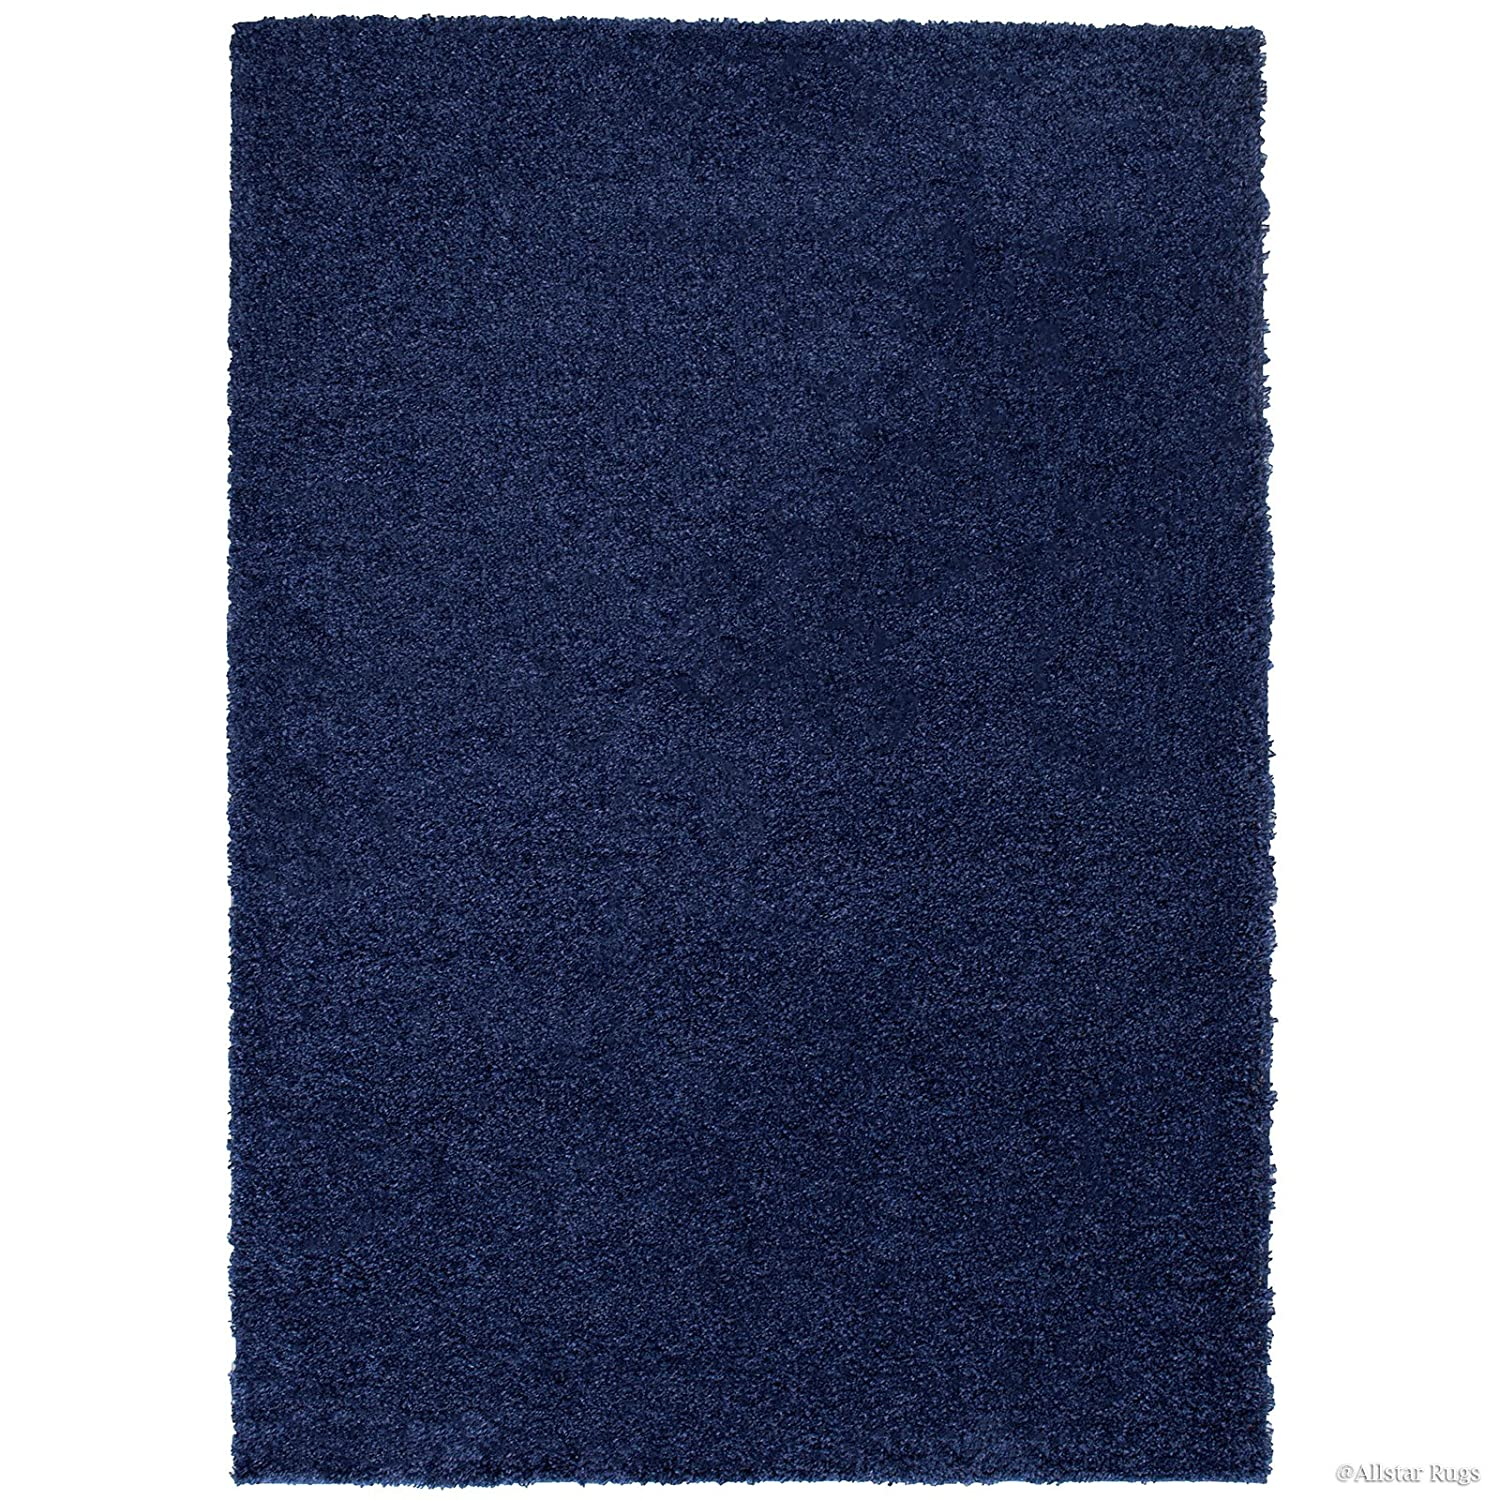 "Amazon.com: Allstar 8 X 10 Dark Blue Modern High Pile Posh And Shaggy Solid Area Rug (7' 9"" X 10'): Kitchen & Dining"